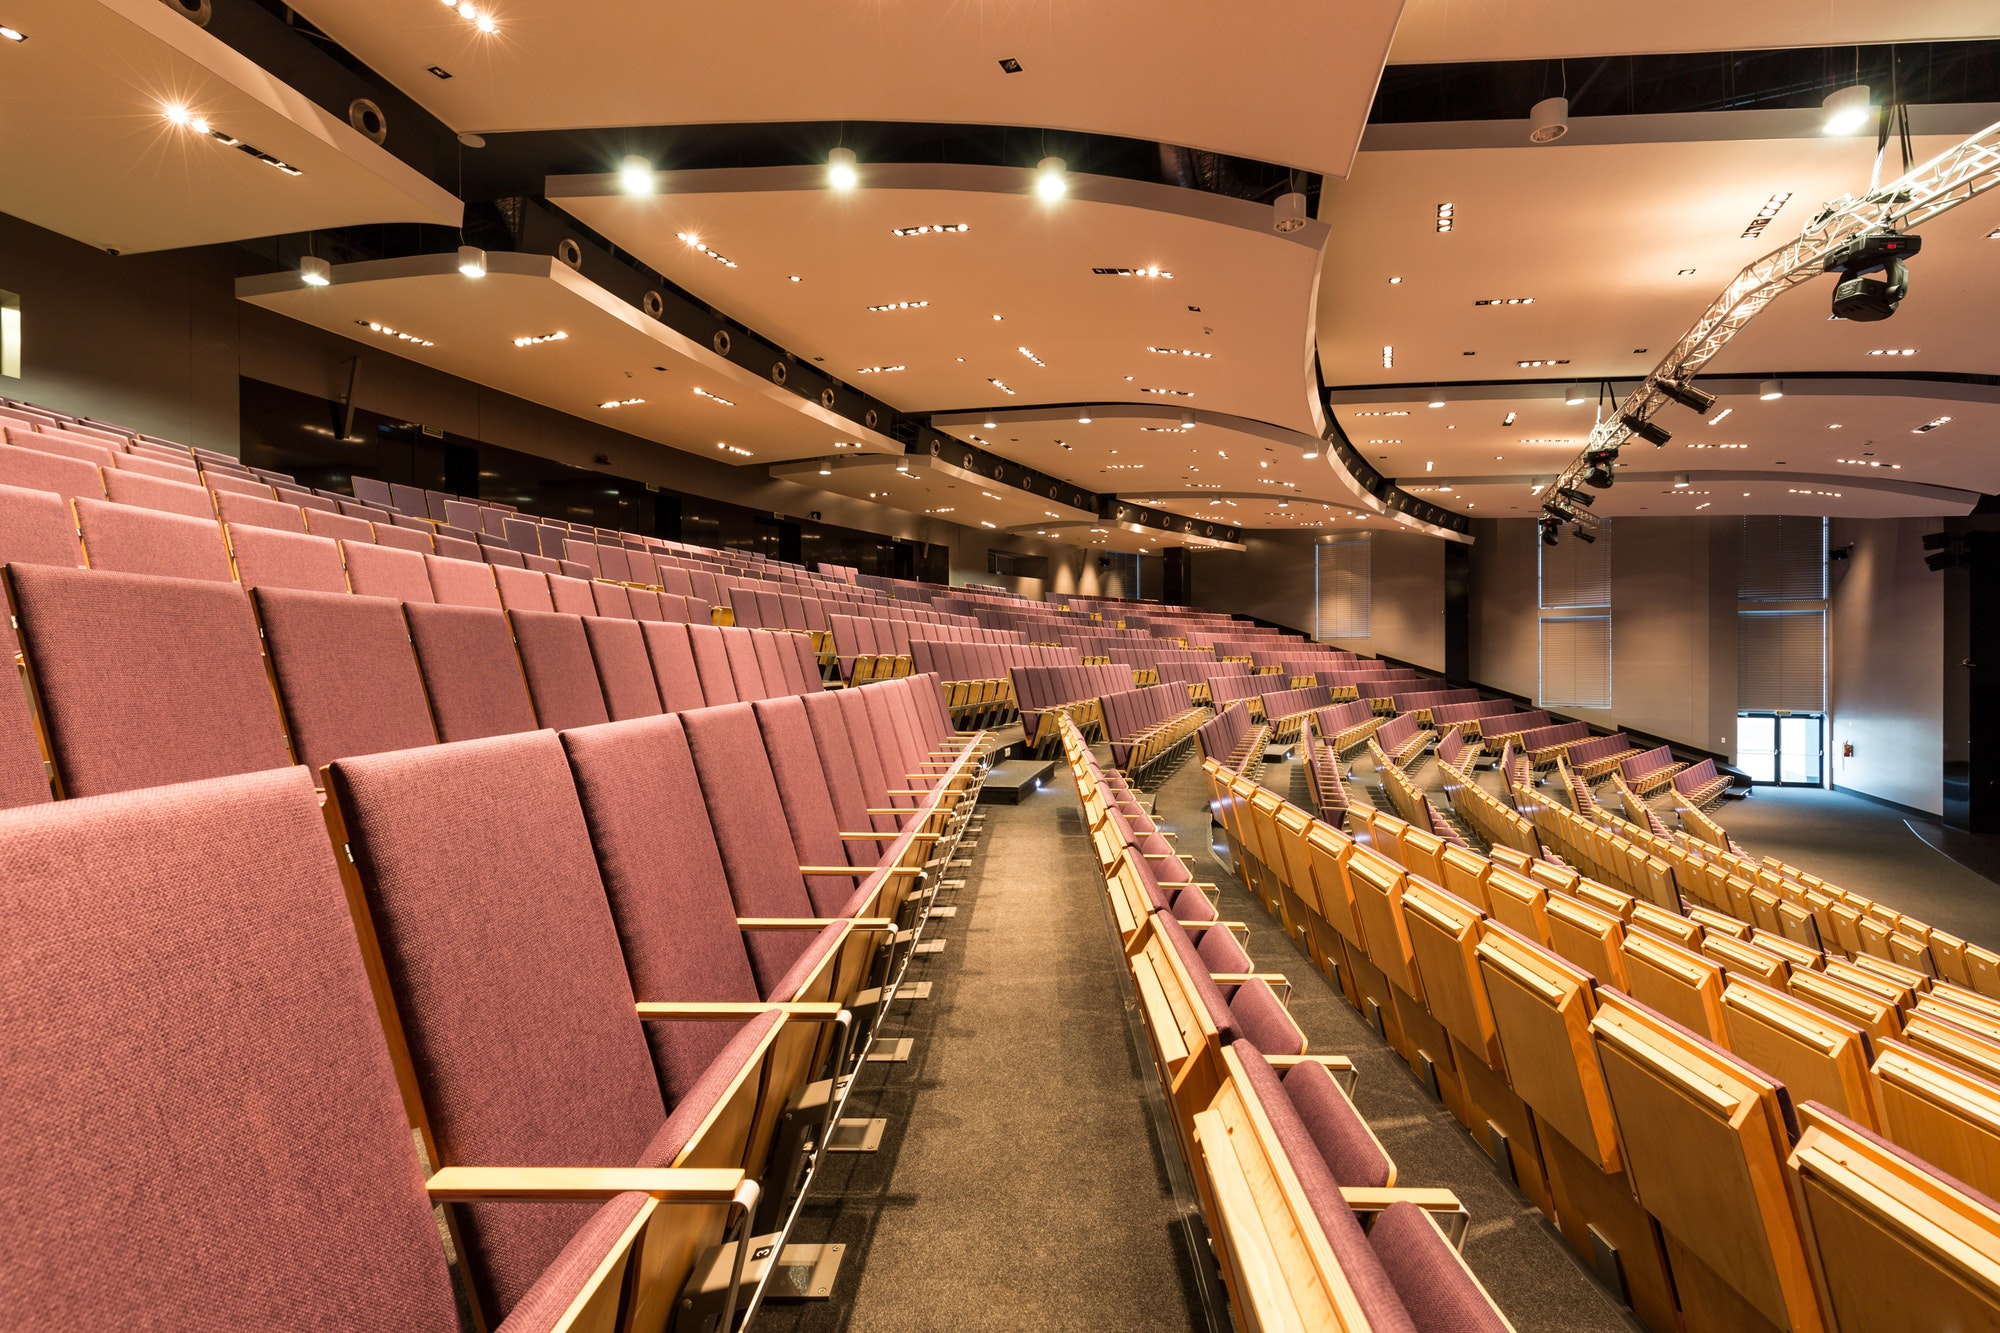 Large lecture hall in academy